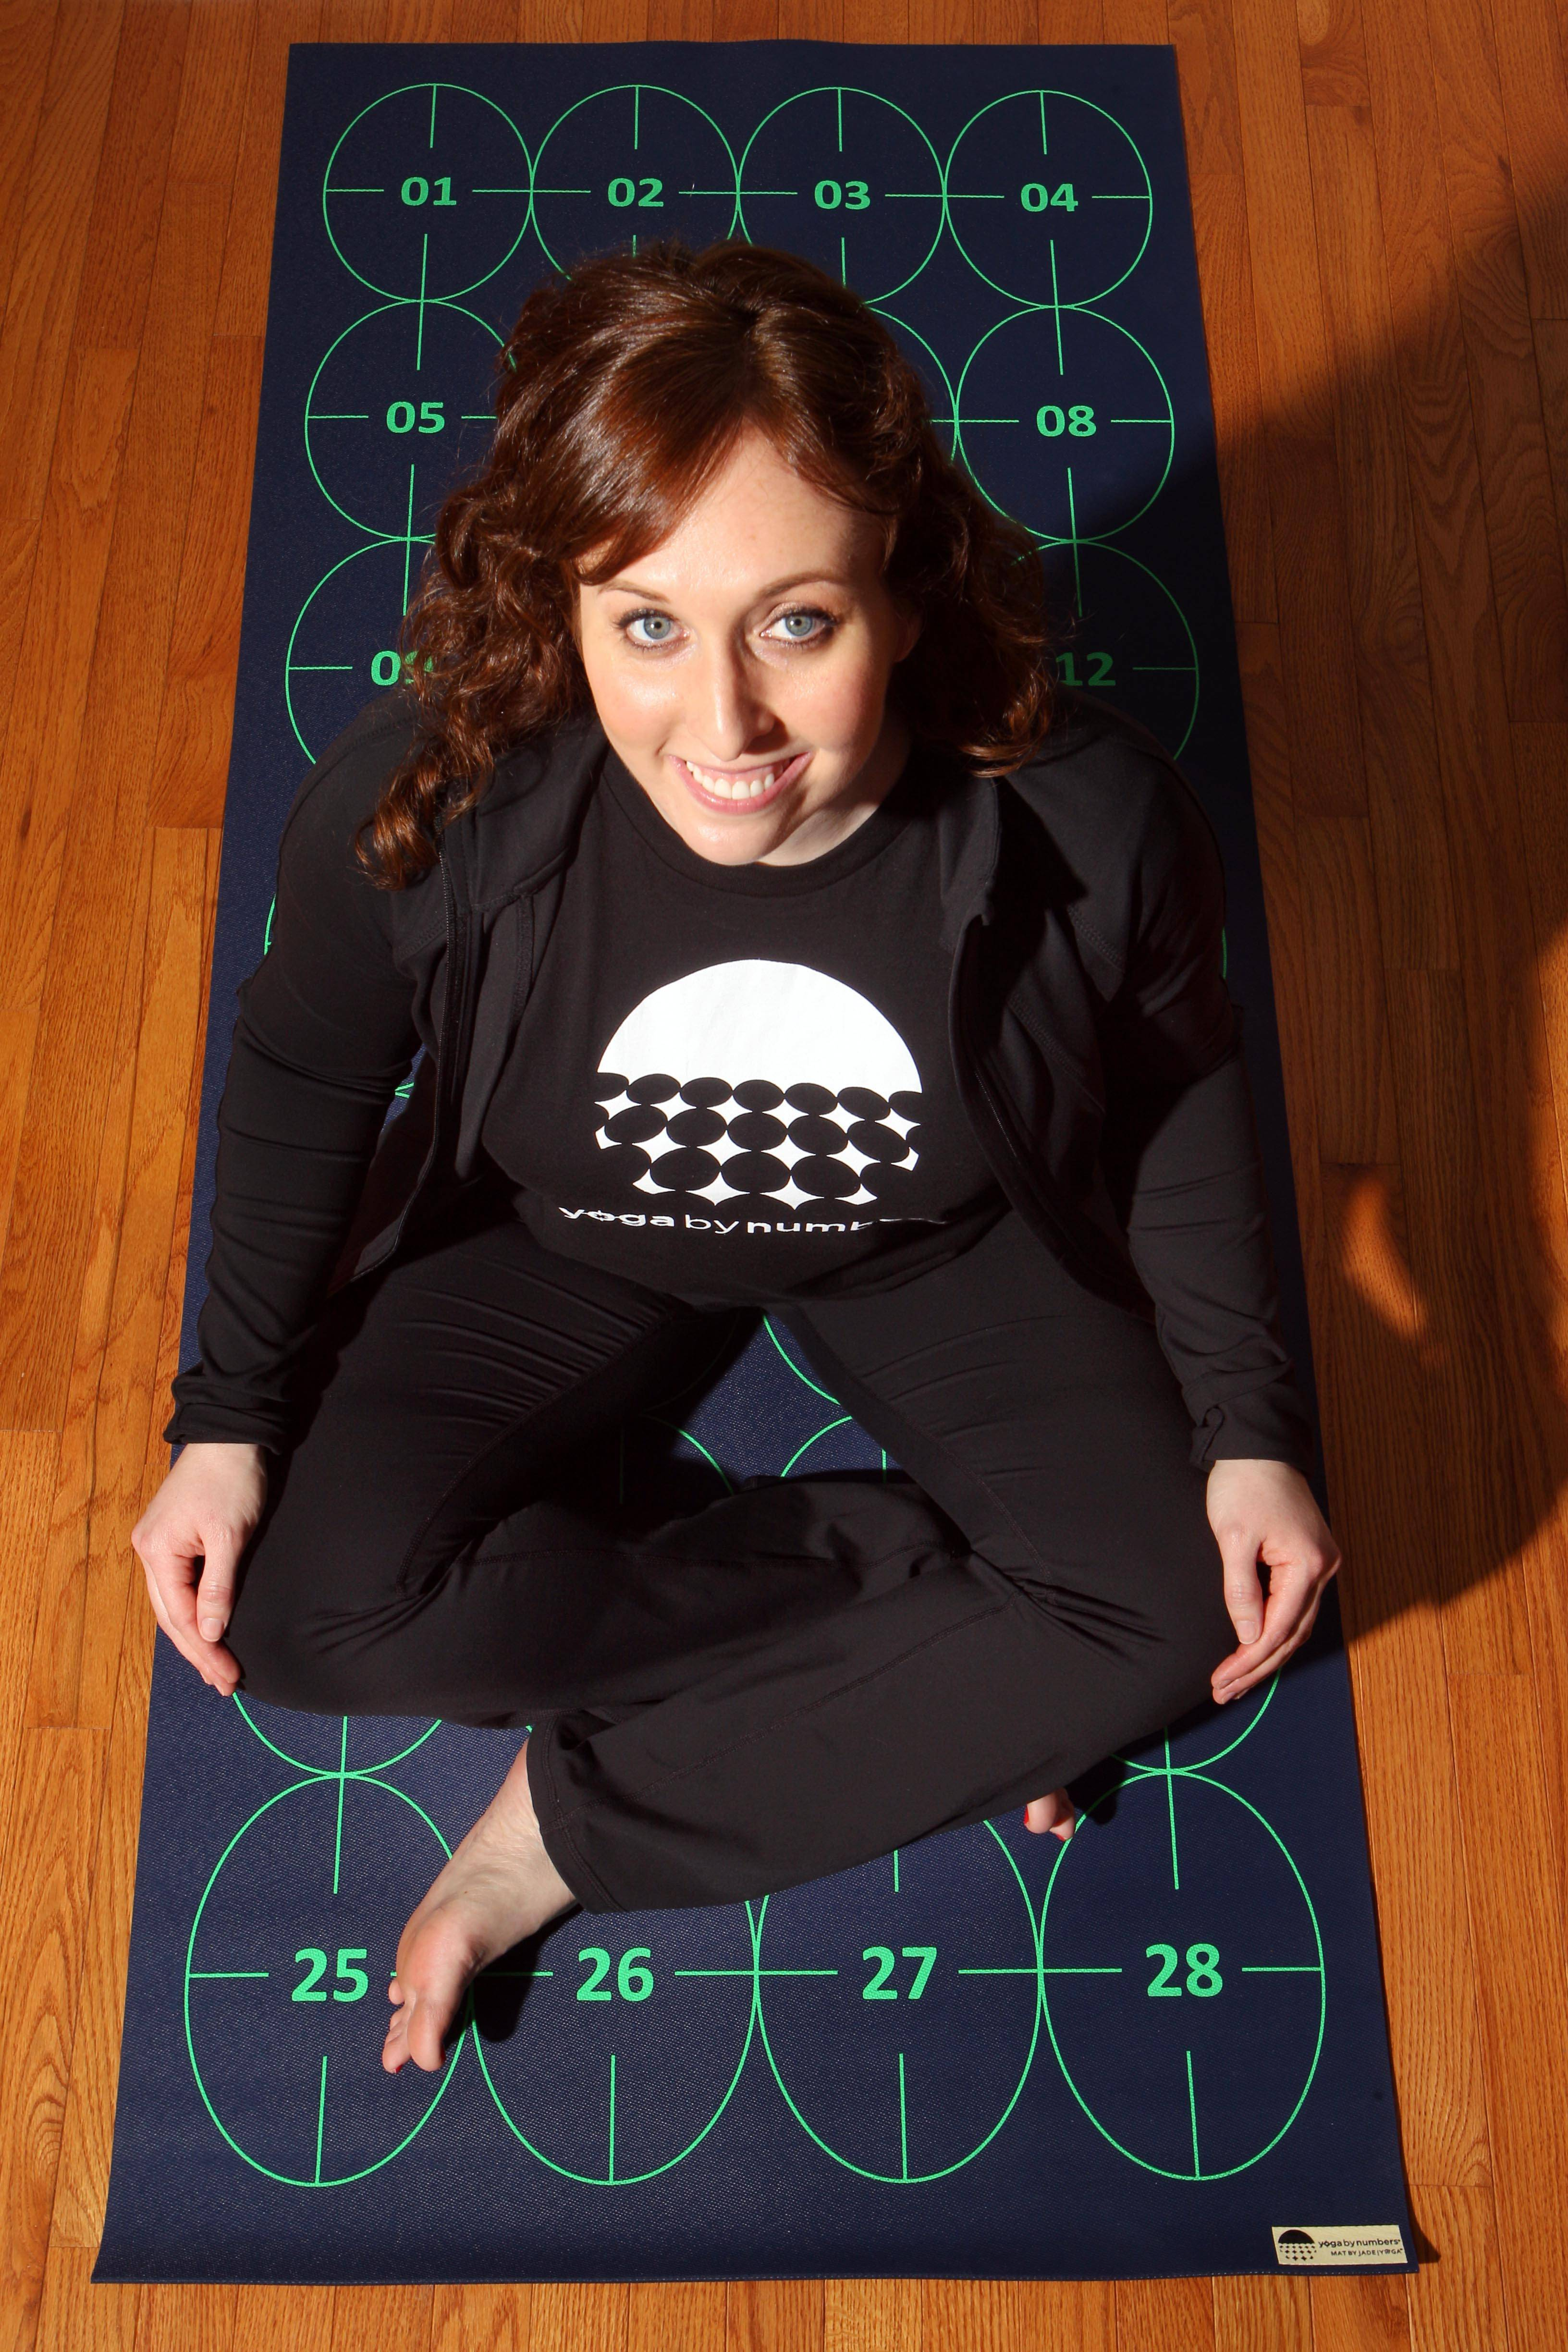 Elizabeth Morrow poses on her specially designed Yoga by Numbers mat that gives true yoga beginners a step-by-step roadmap to learn poses at their own pace.